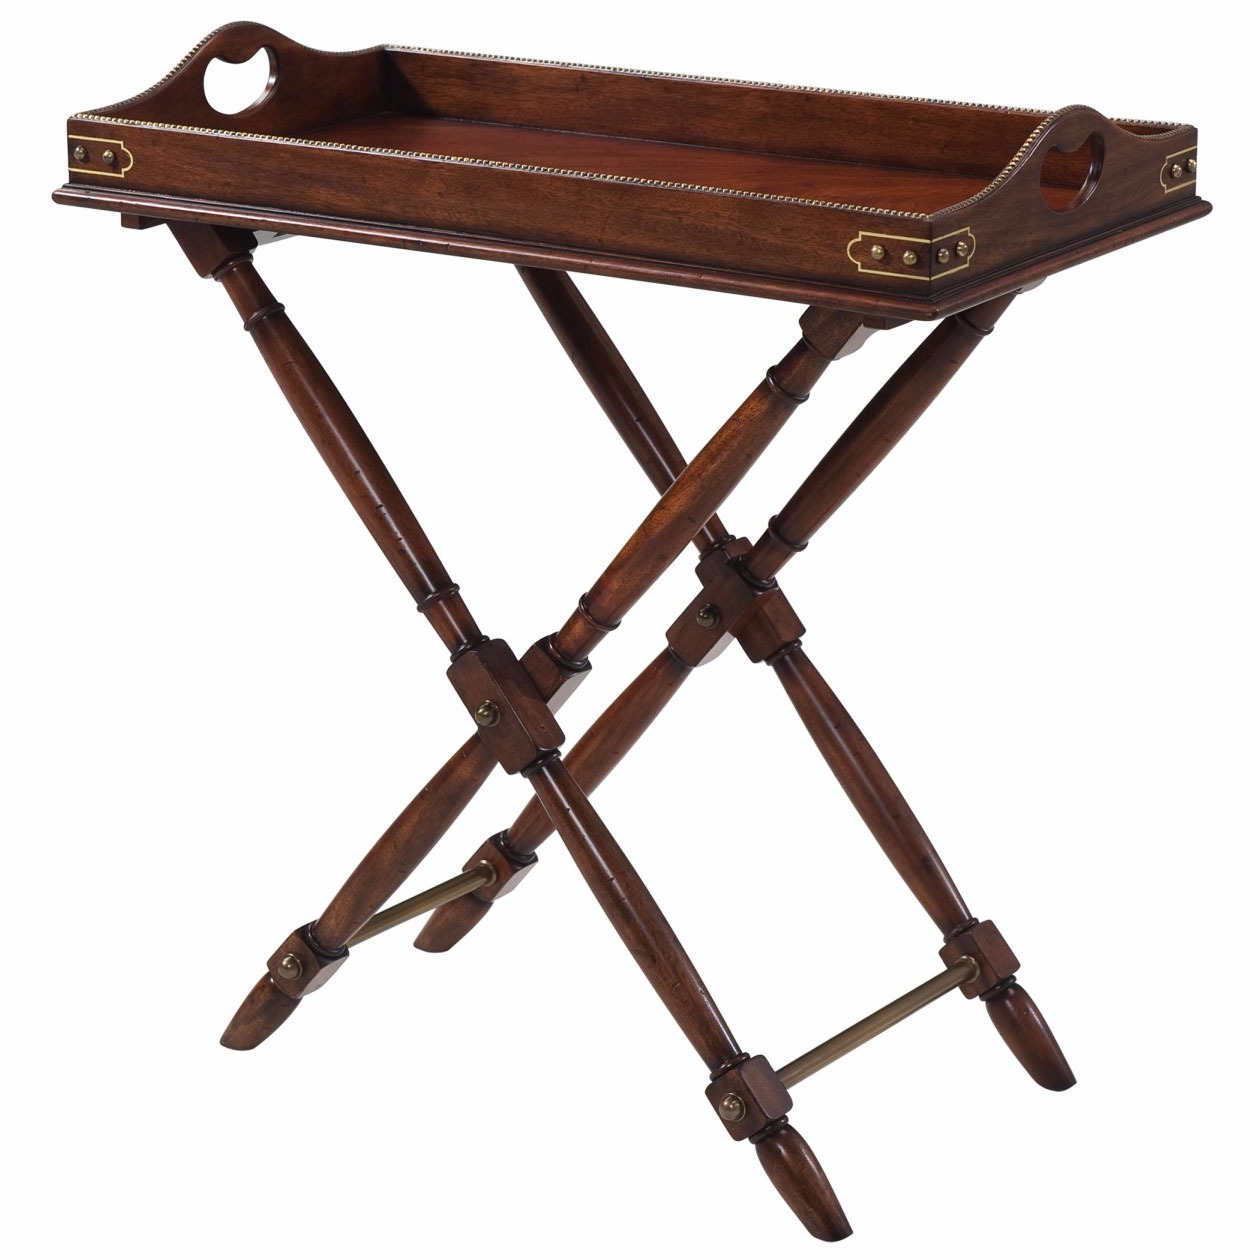 A mahogany butler's tray accent table